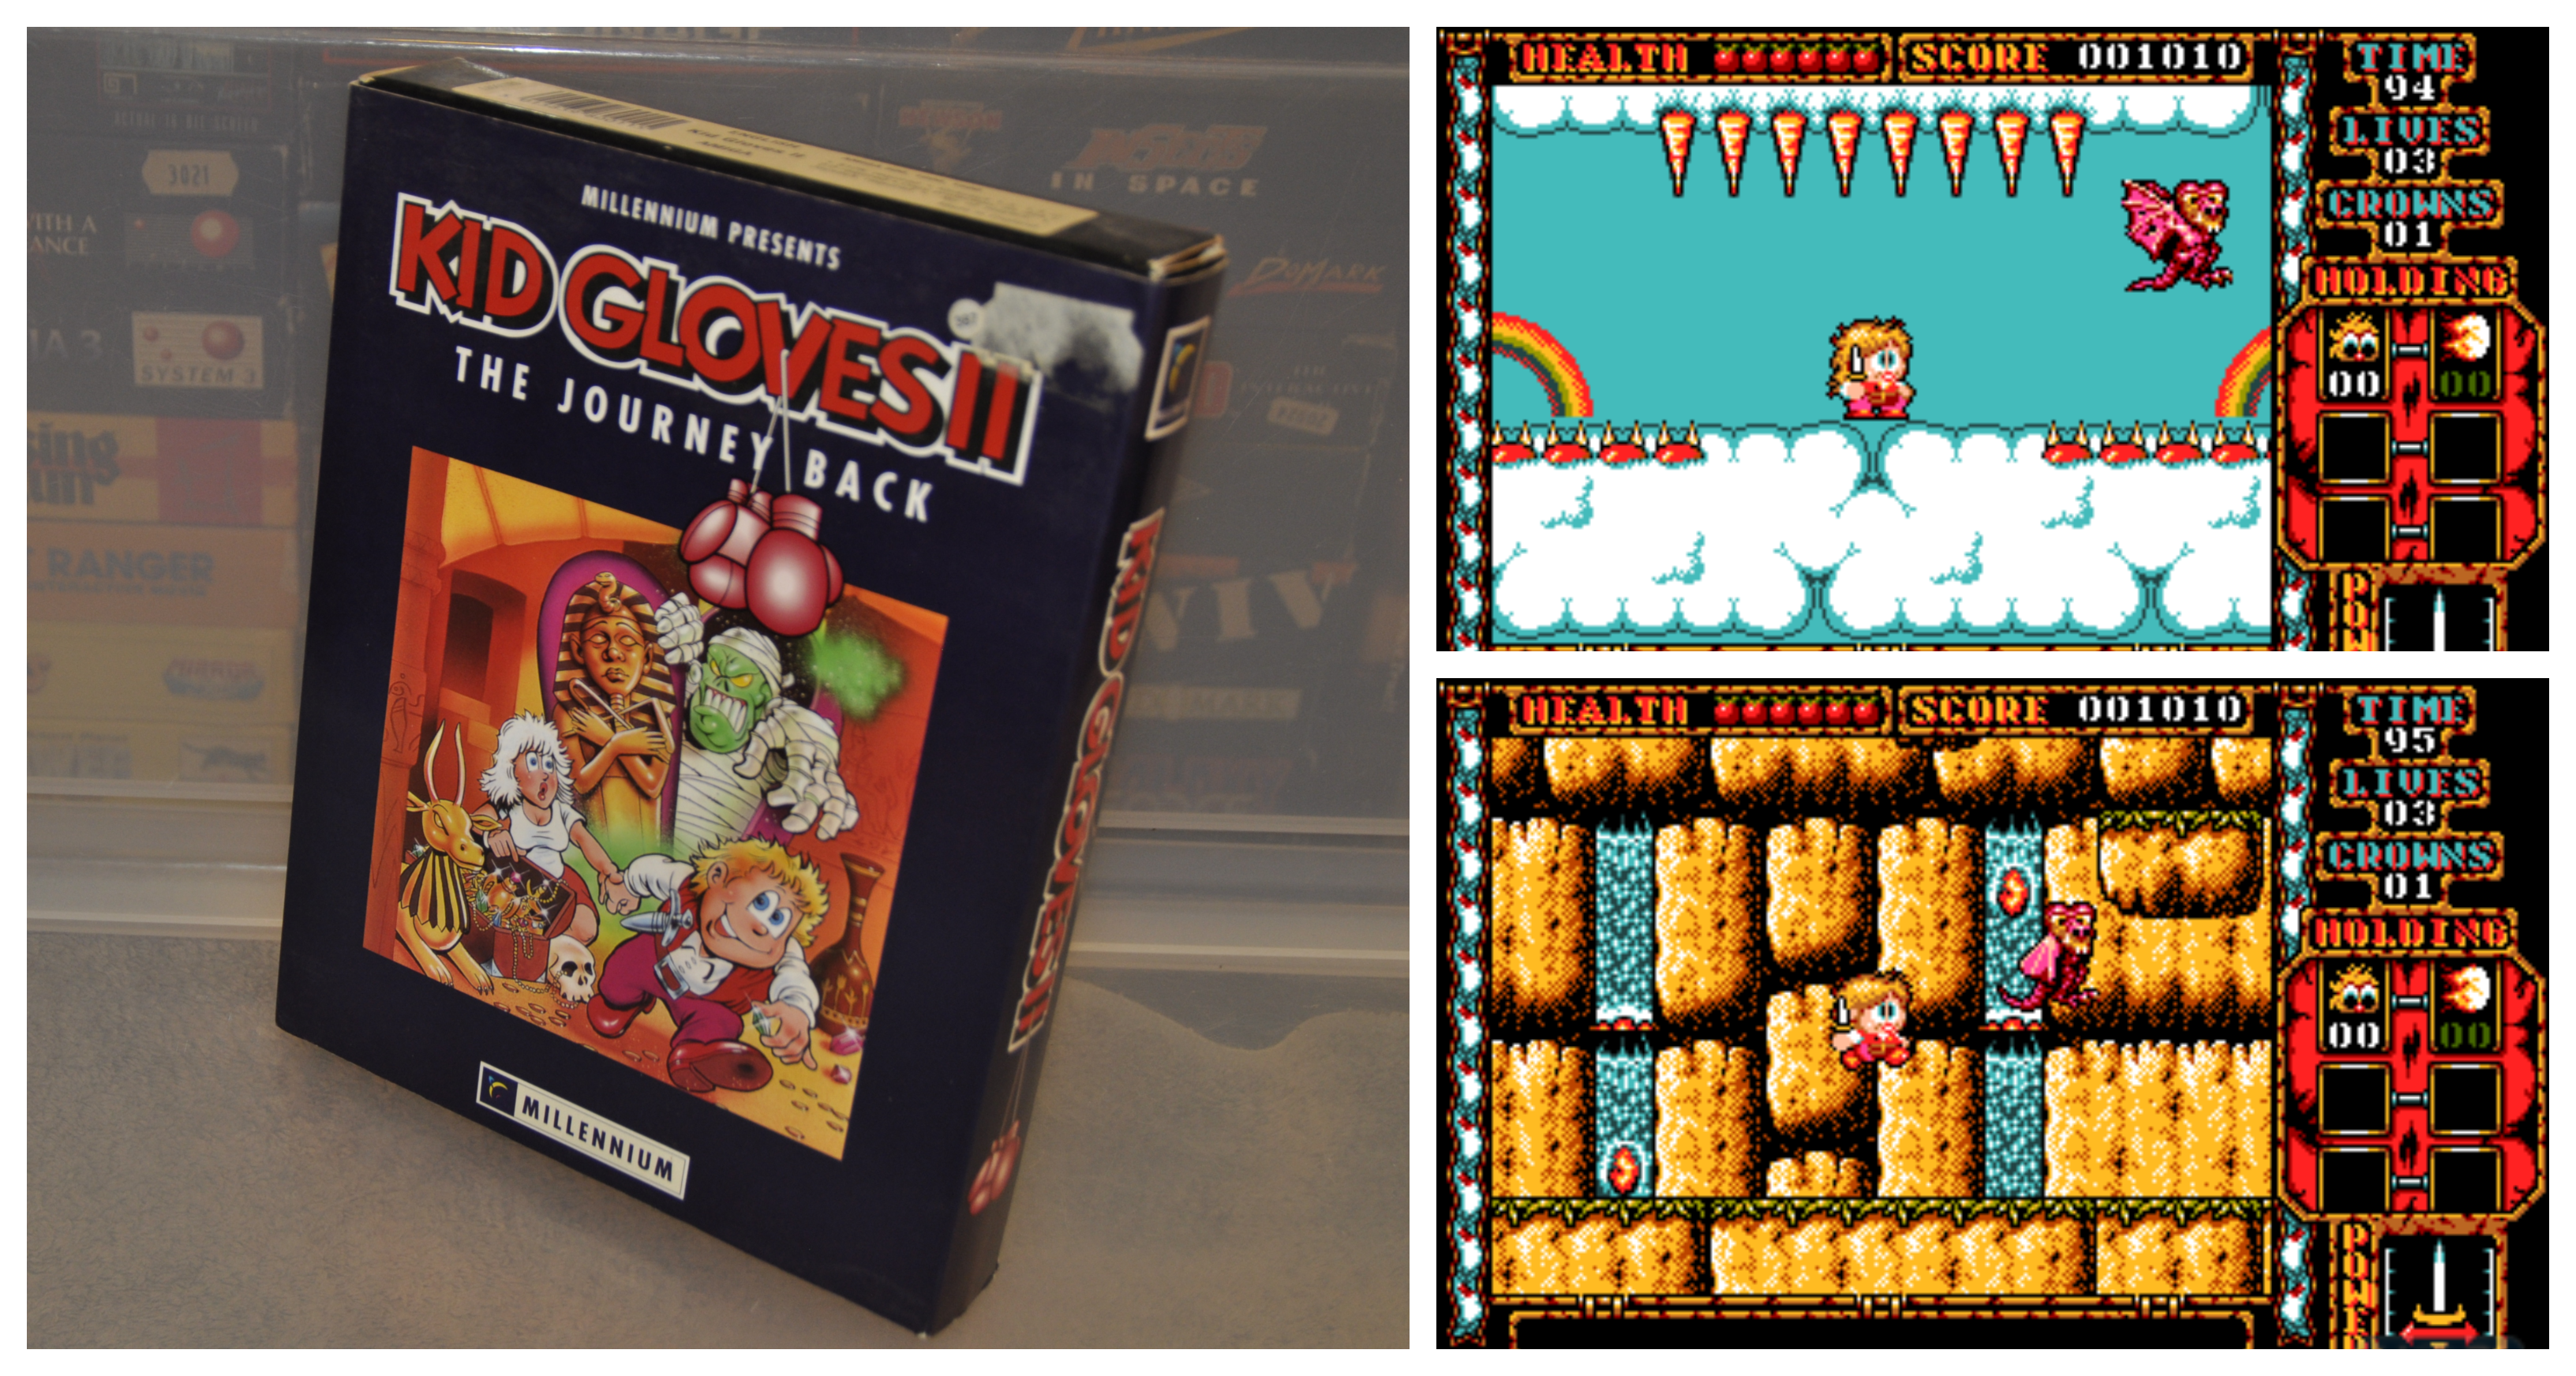 The Games We Never Talk About: Kid Gloves II The Journey Back